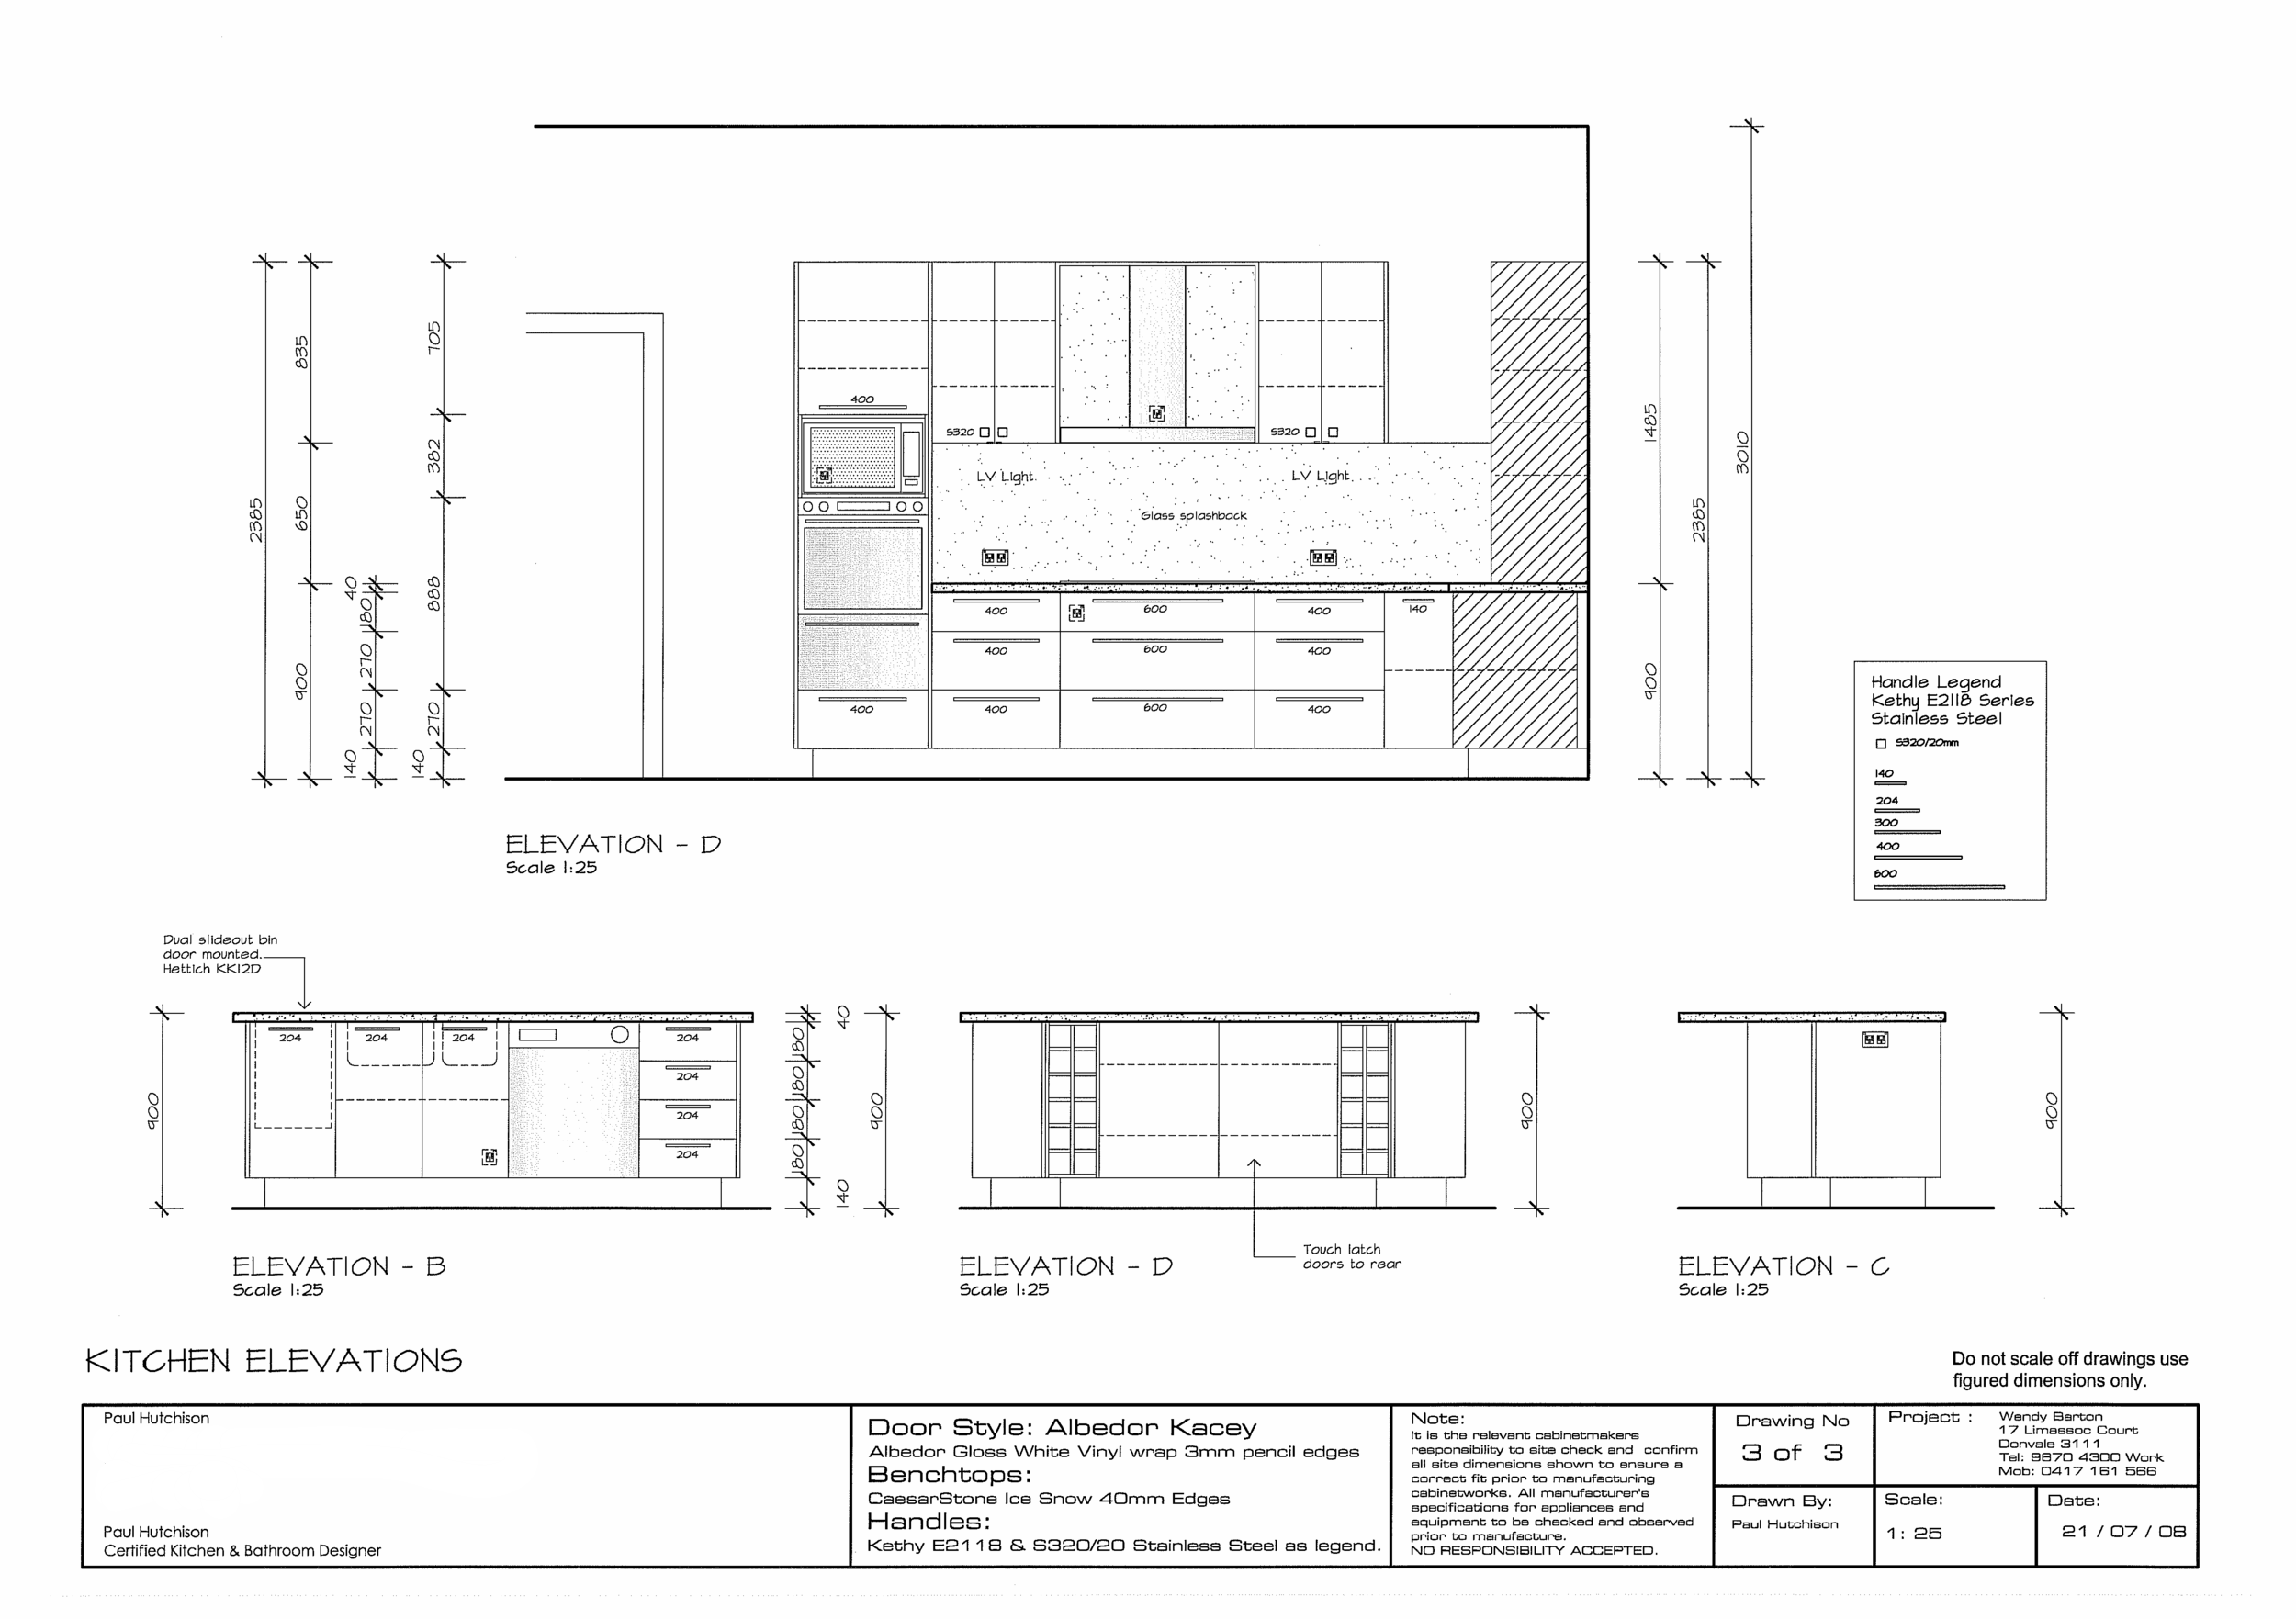 Detailed kitchen second elevation plans